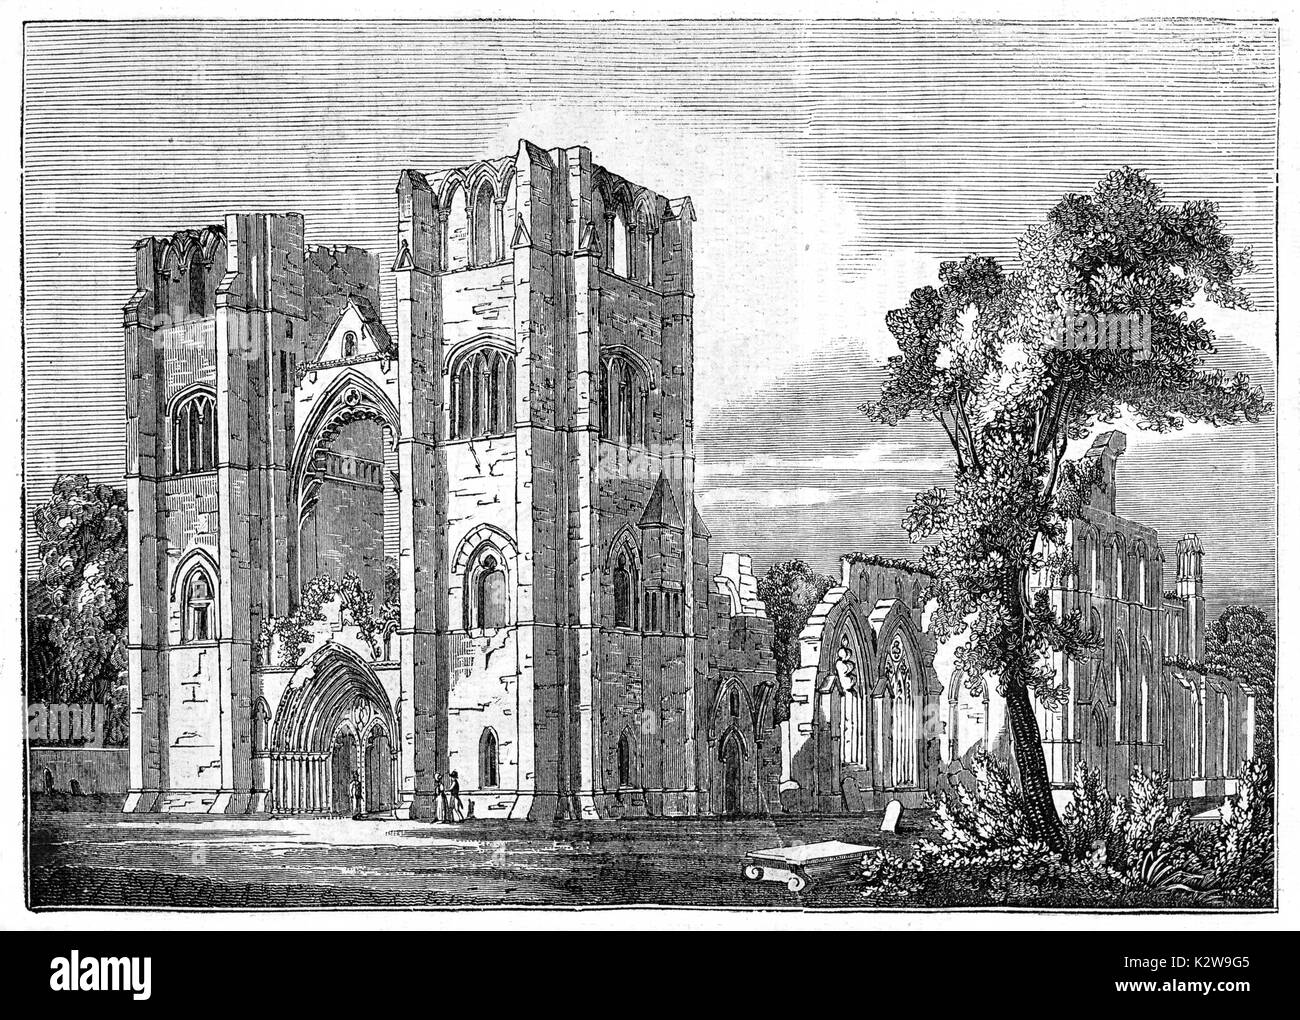 Old view of Elgin cathedral, Scotland. By unidentified author, published on Penny Magazine, London, 1835 - Stock Image